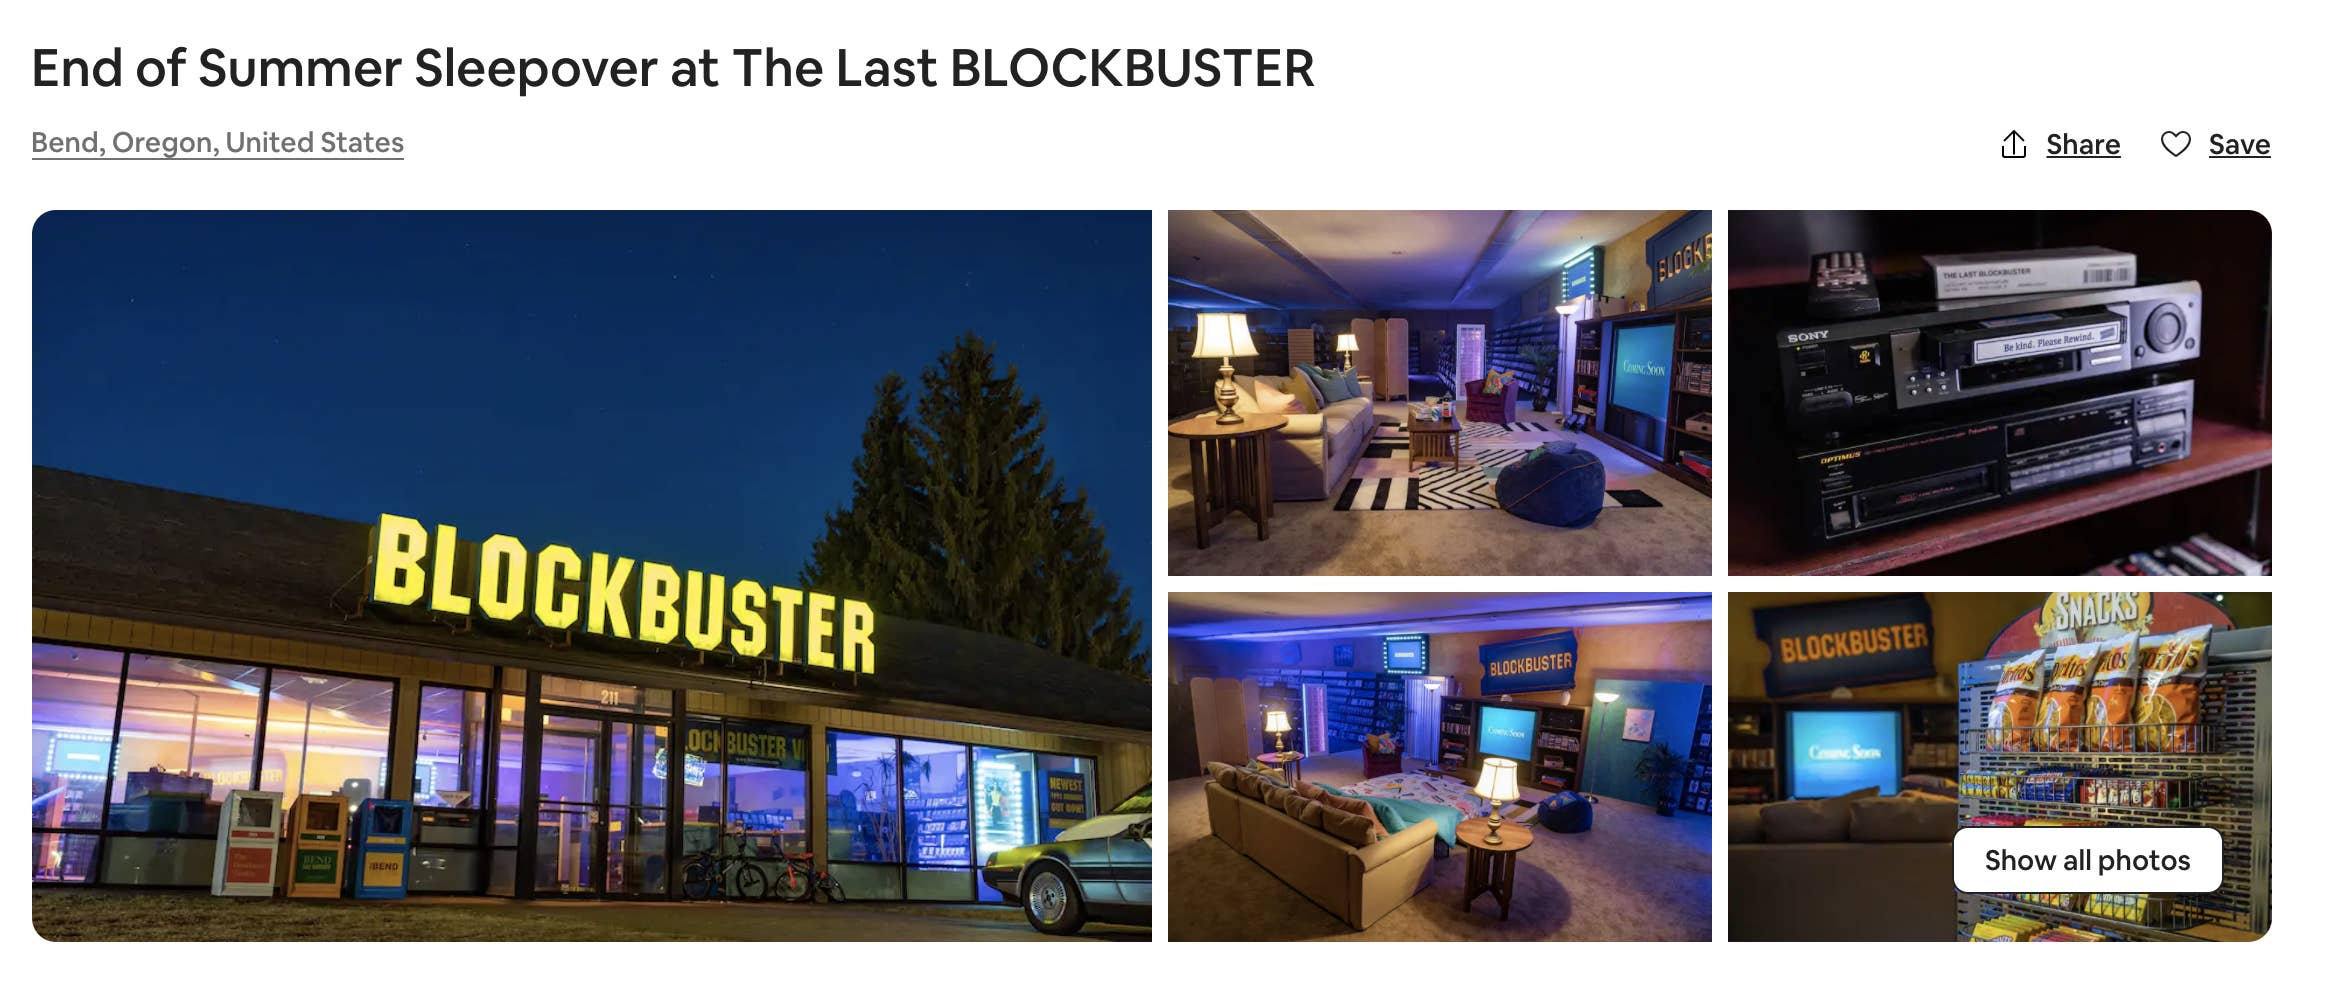 the last blockbuster turned into airbnb